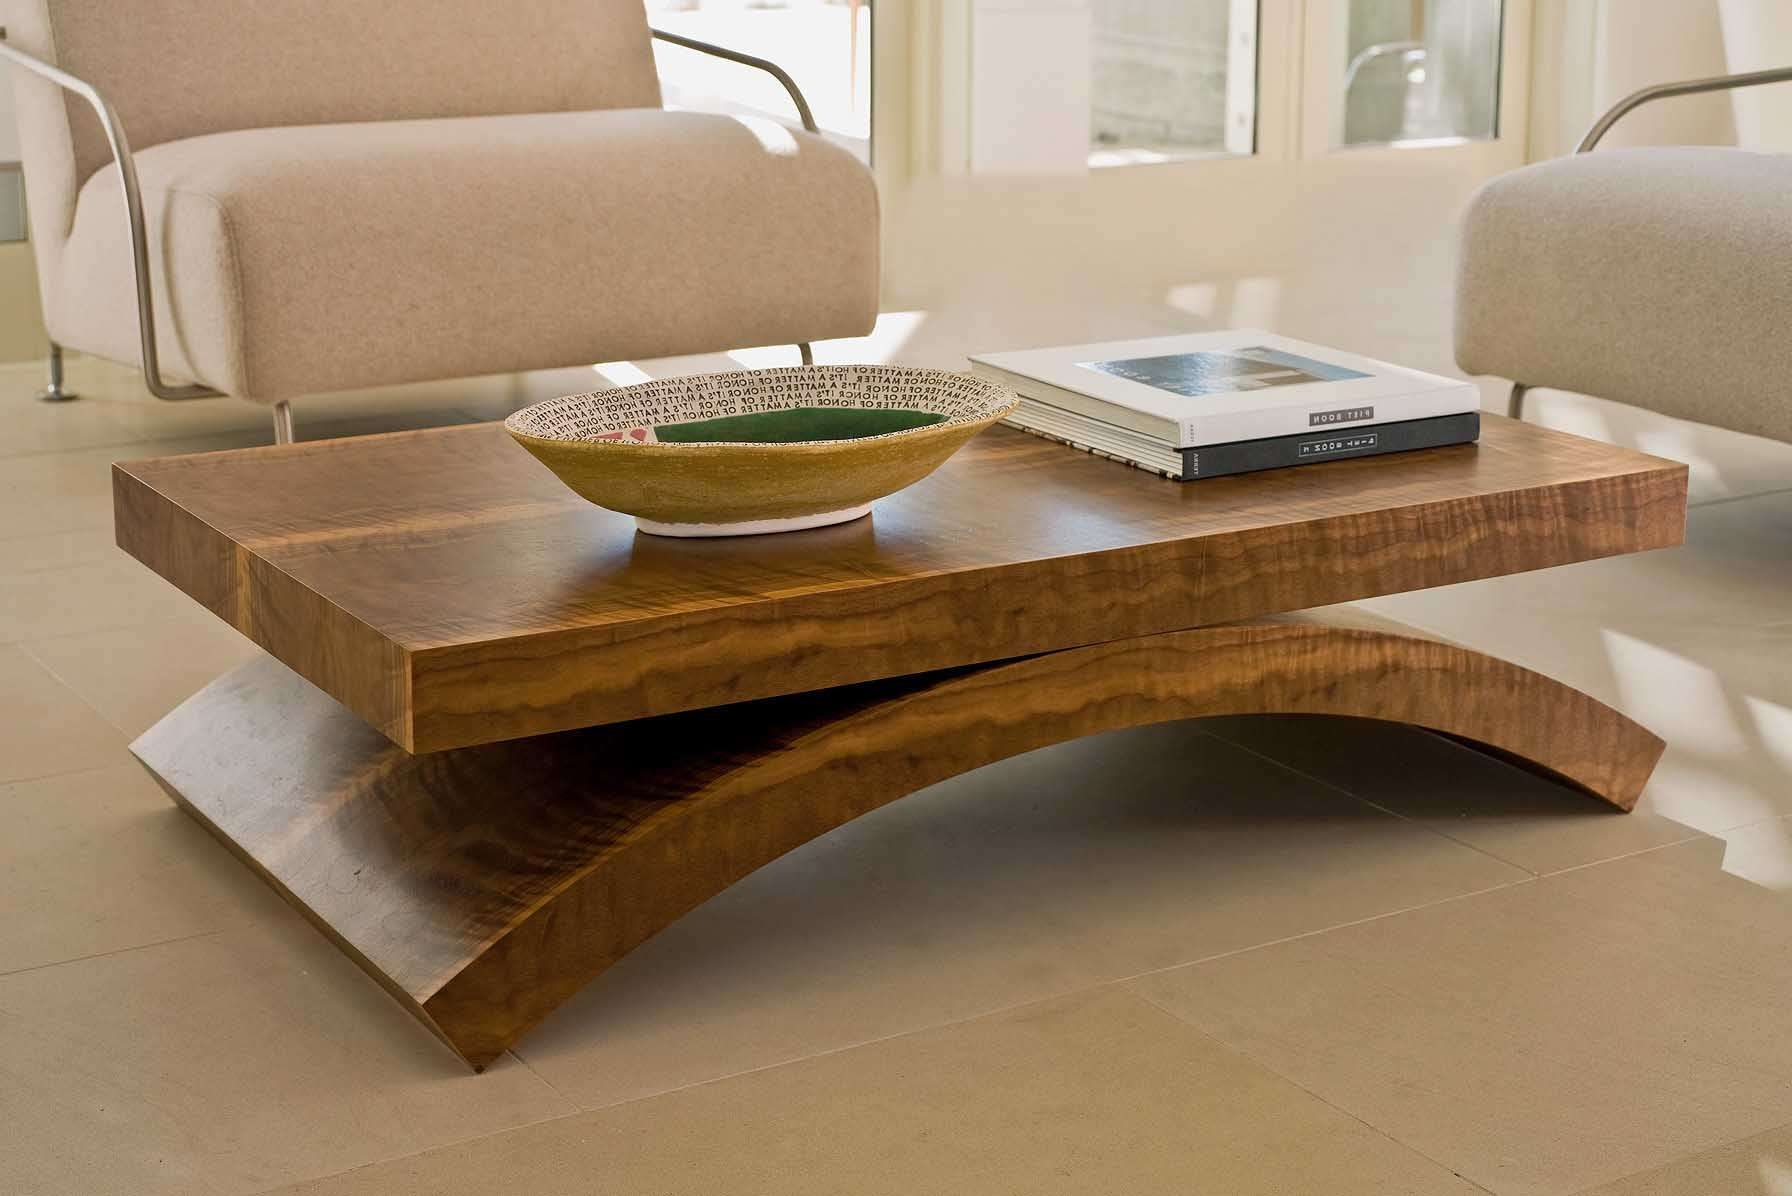 Preferred Nice Coffee Tables Intended For Coffee Tables : White Round Coffee Table Beautiful Washed Coastal (View 17 of 20)